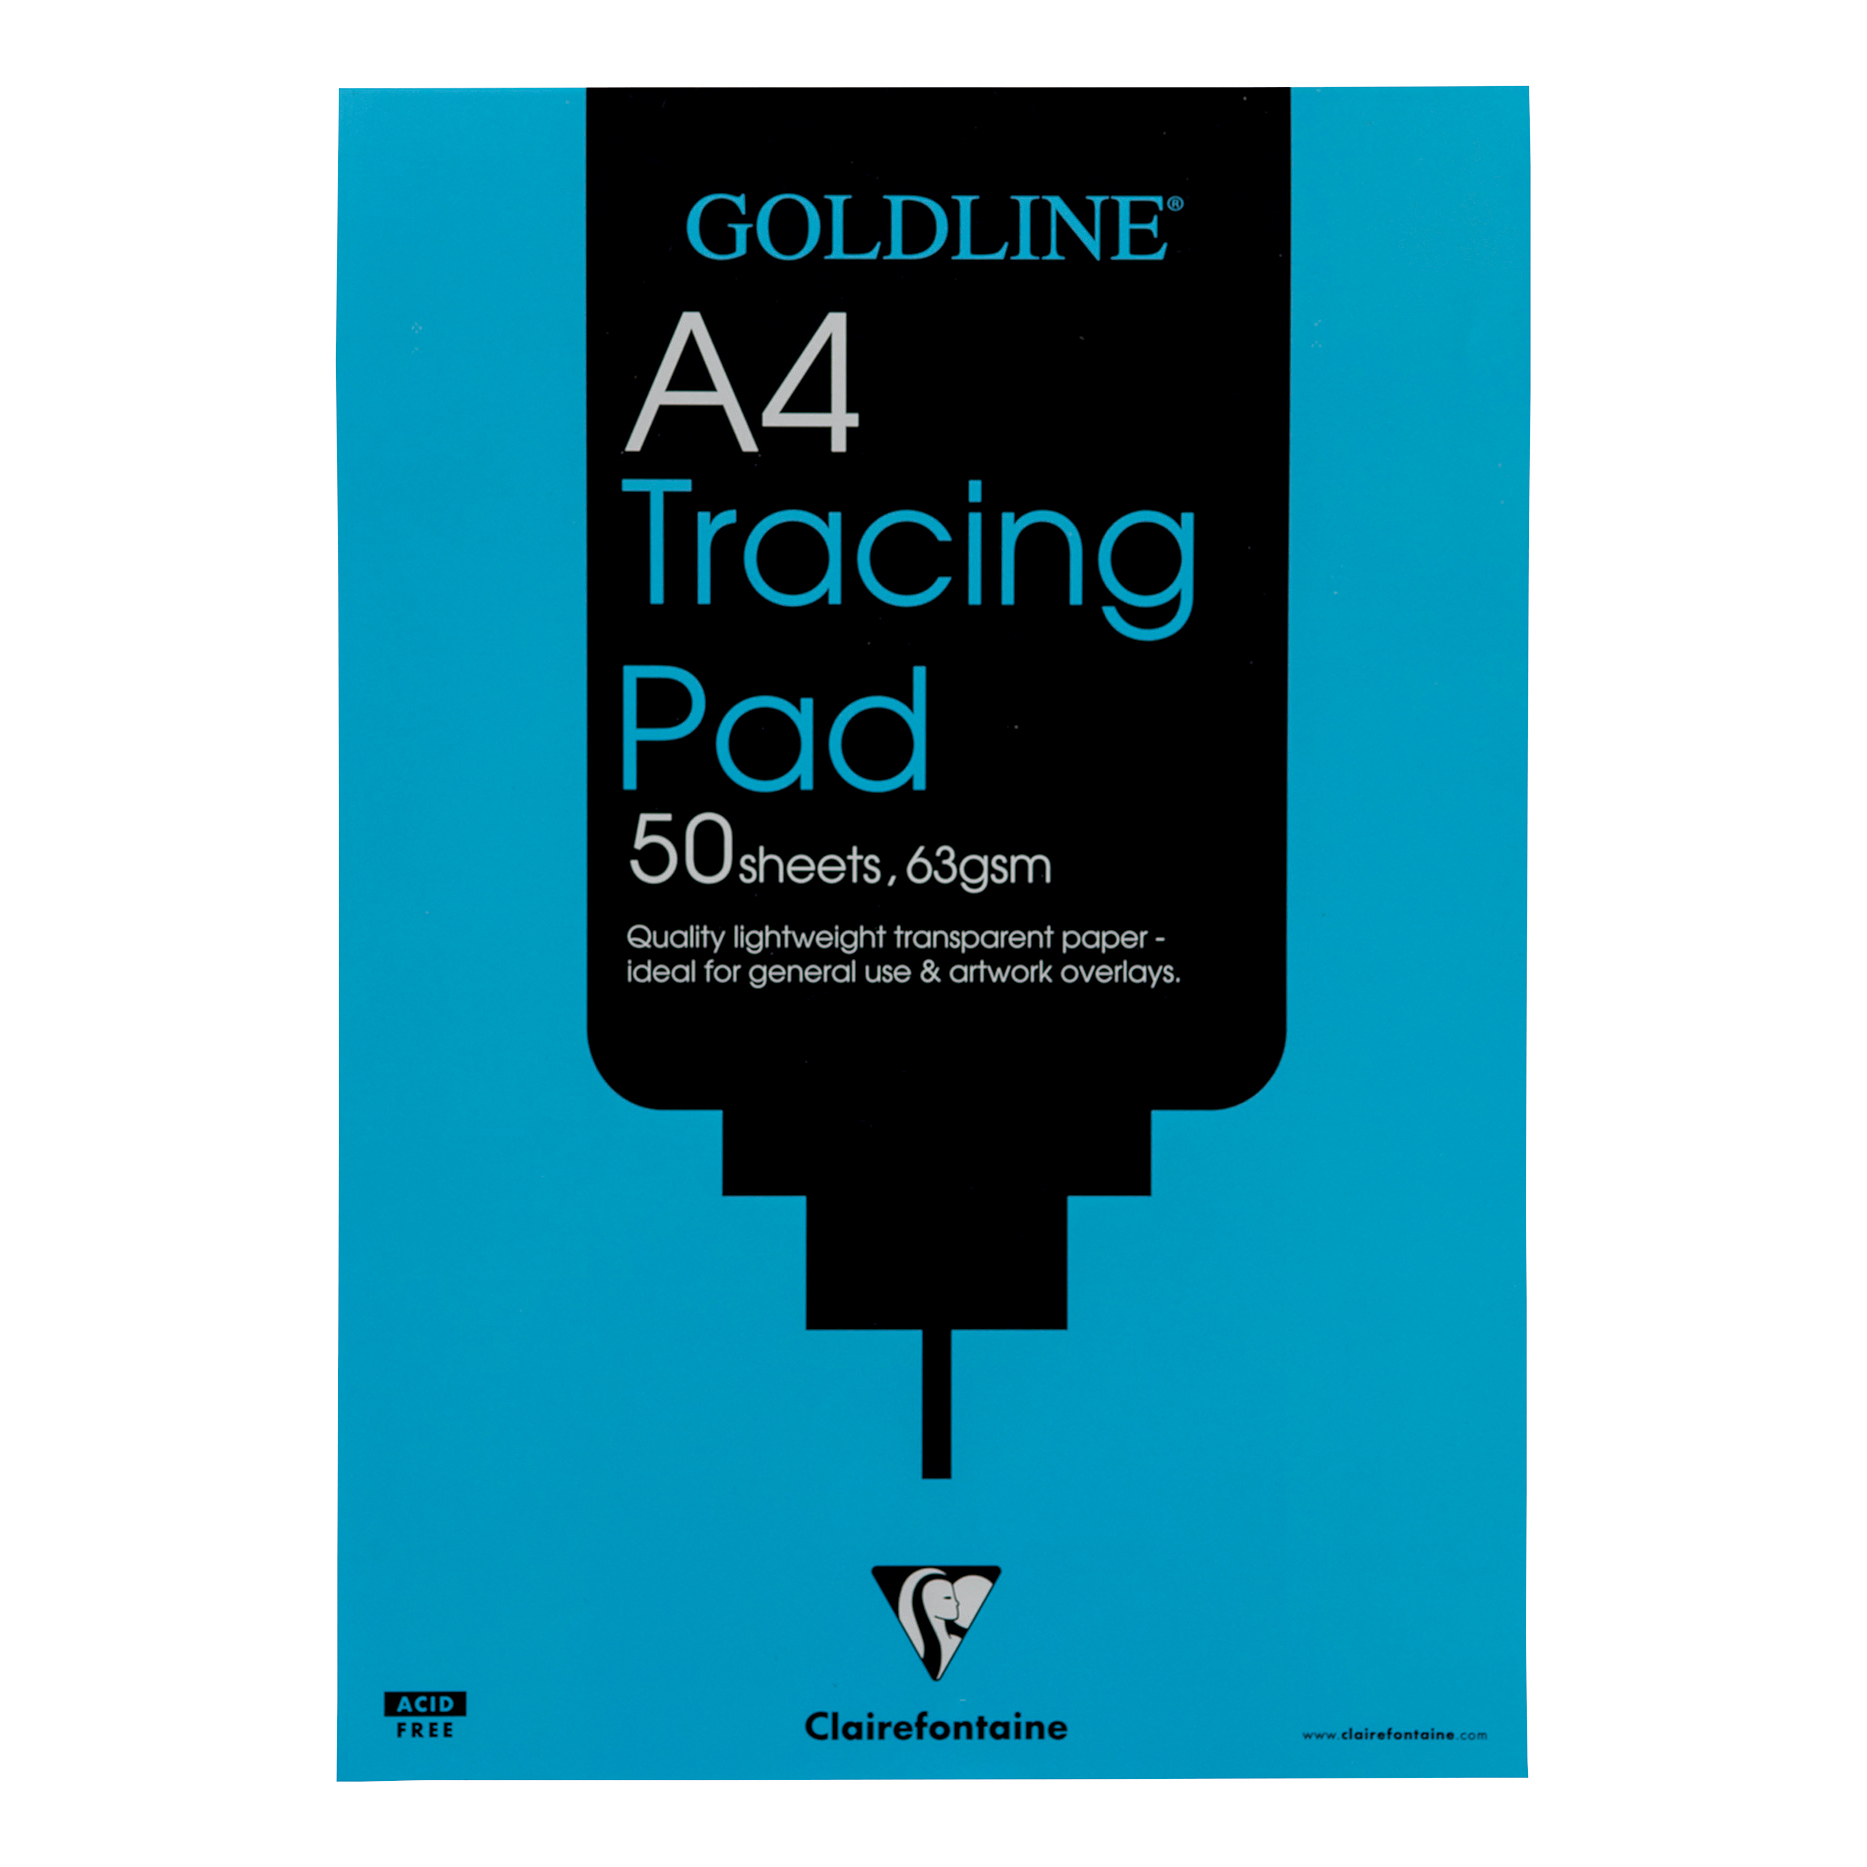 Goldline Popular Tracing Pad 63gsm Acid-free Paper 50 Sheets A4 Ref GPT2A4Z [Pack 5]